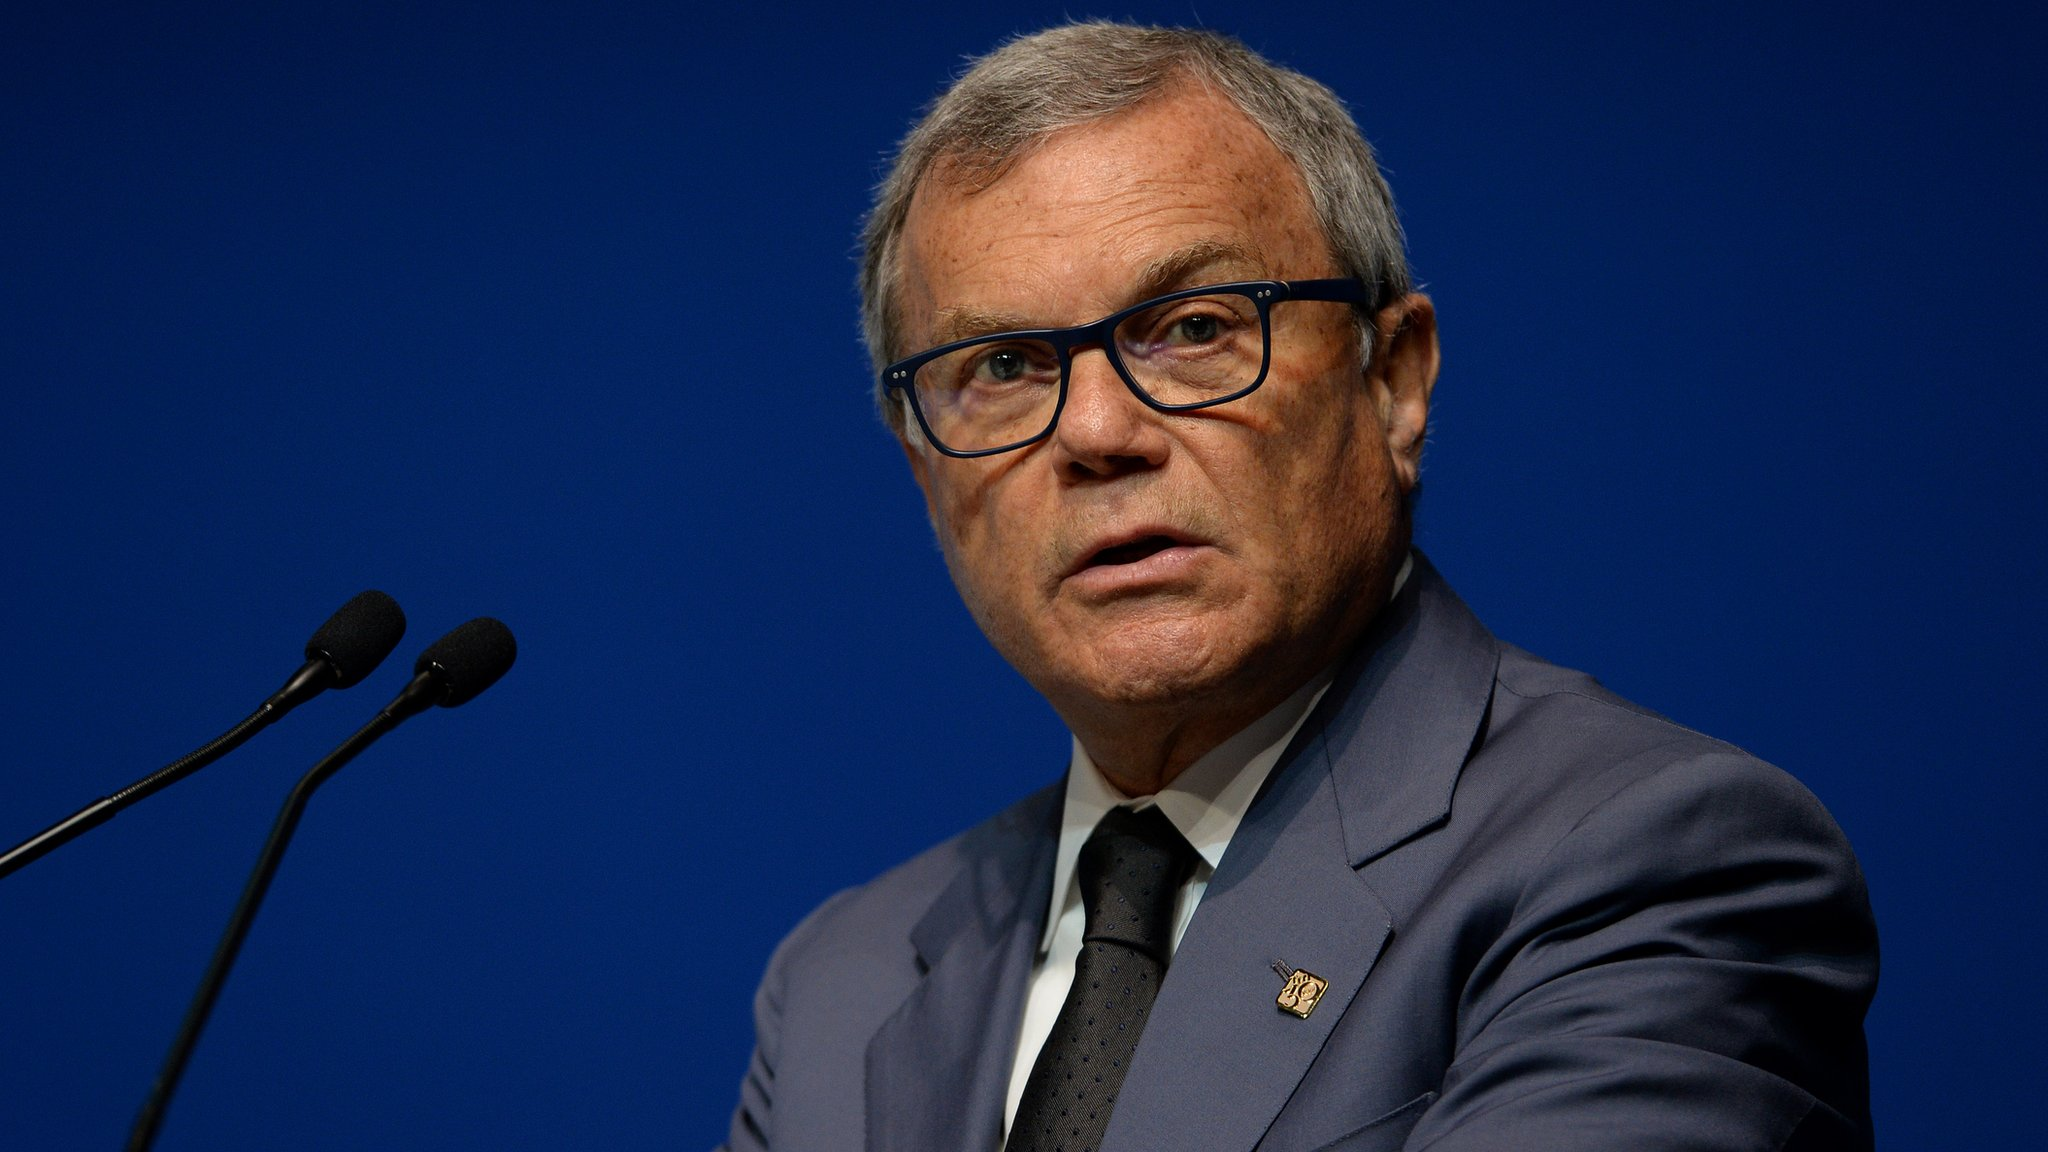 WPP boss Martin Sorrell faces misconduct investigation